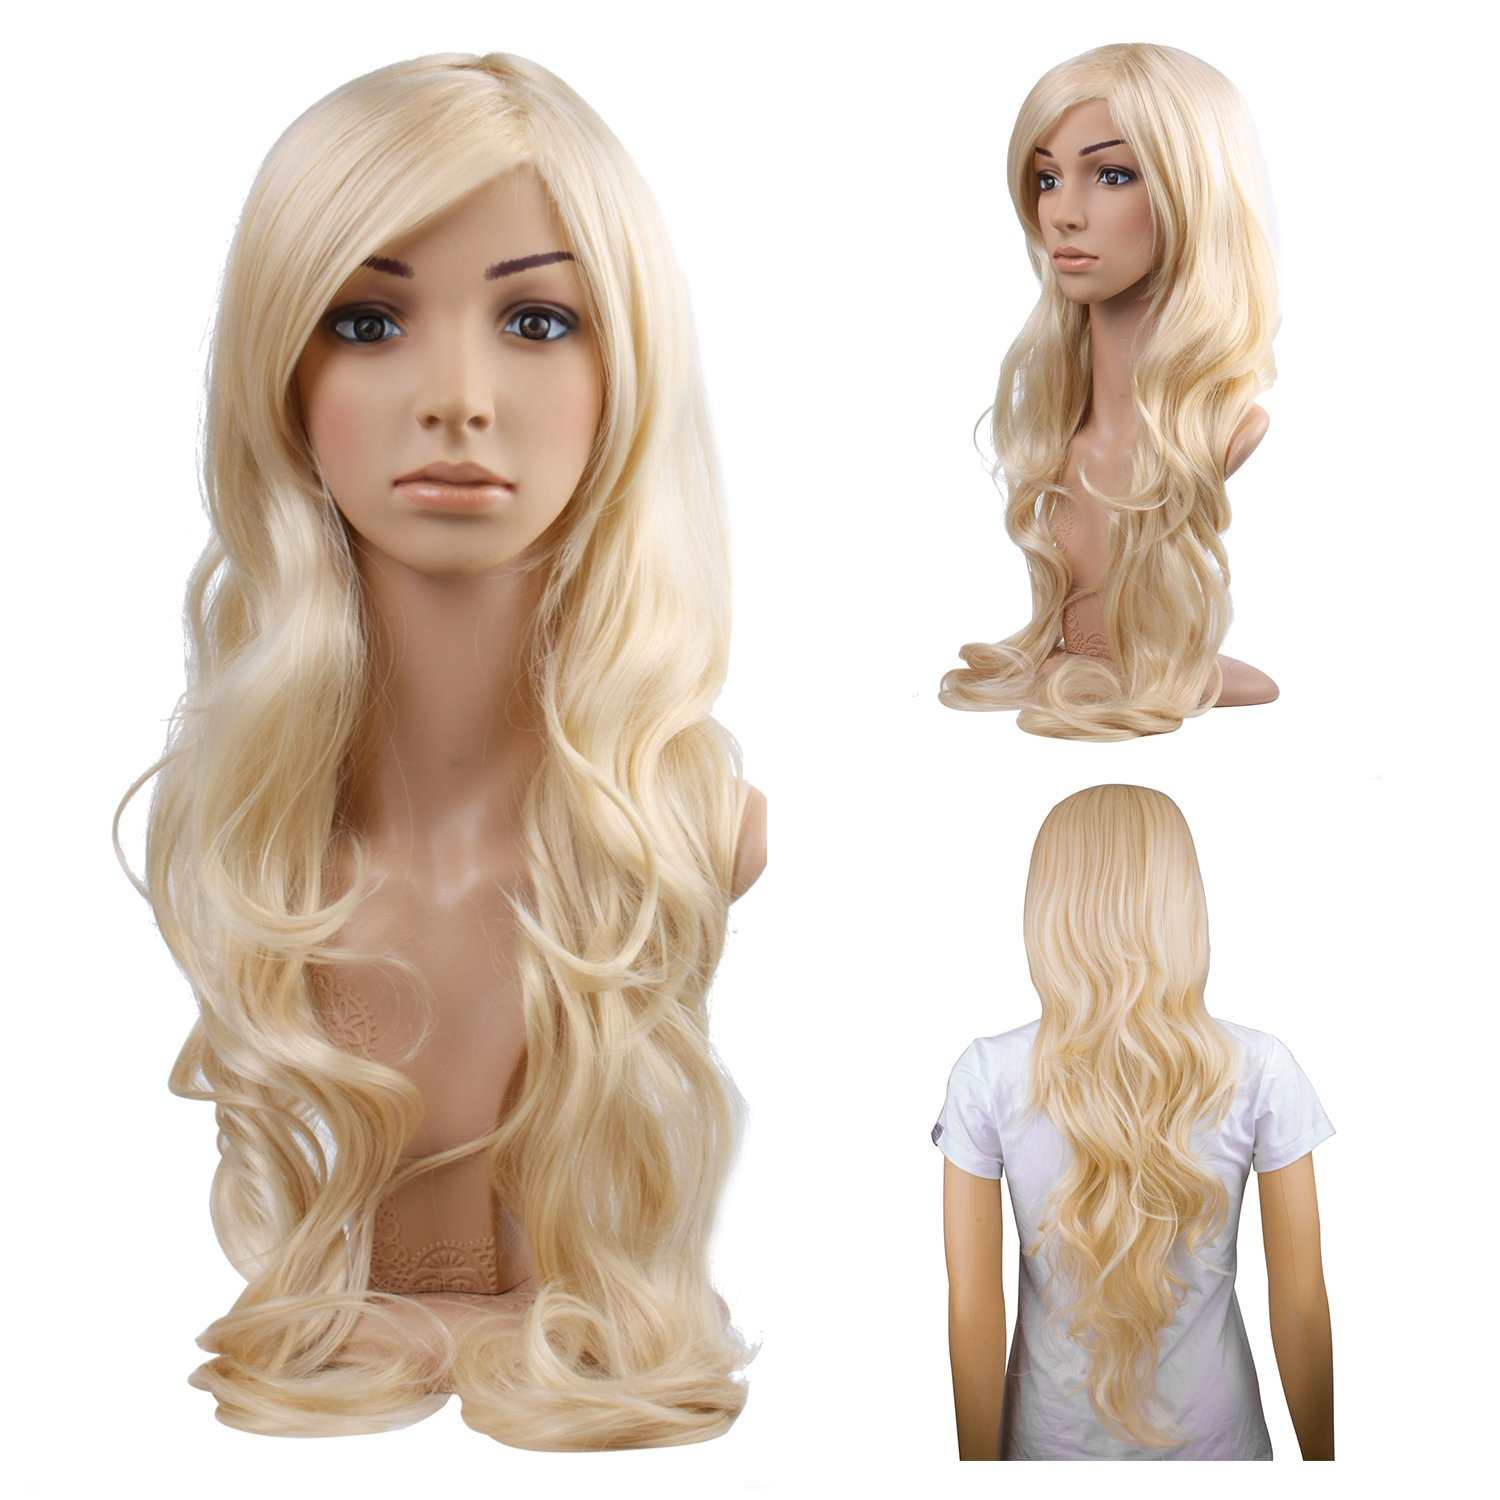 Download image 1700s woman portrait pc android iphone and ipad - Melodysusie Cosplay Blonde Curly Wig Gorgeous Women Long Curly Wig With Free Wig Cap And Wig Comb Light Blonde